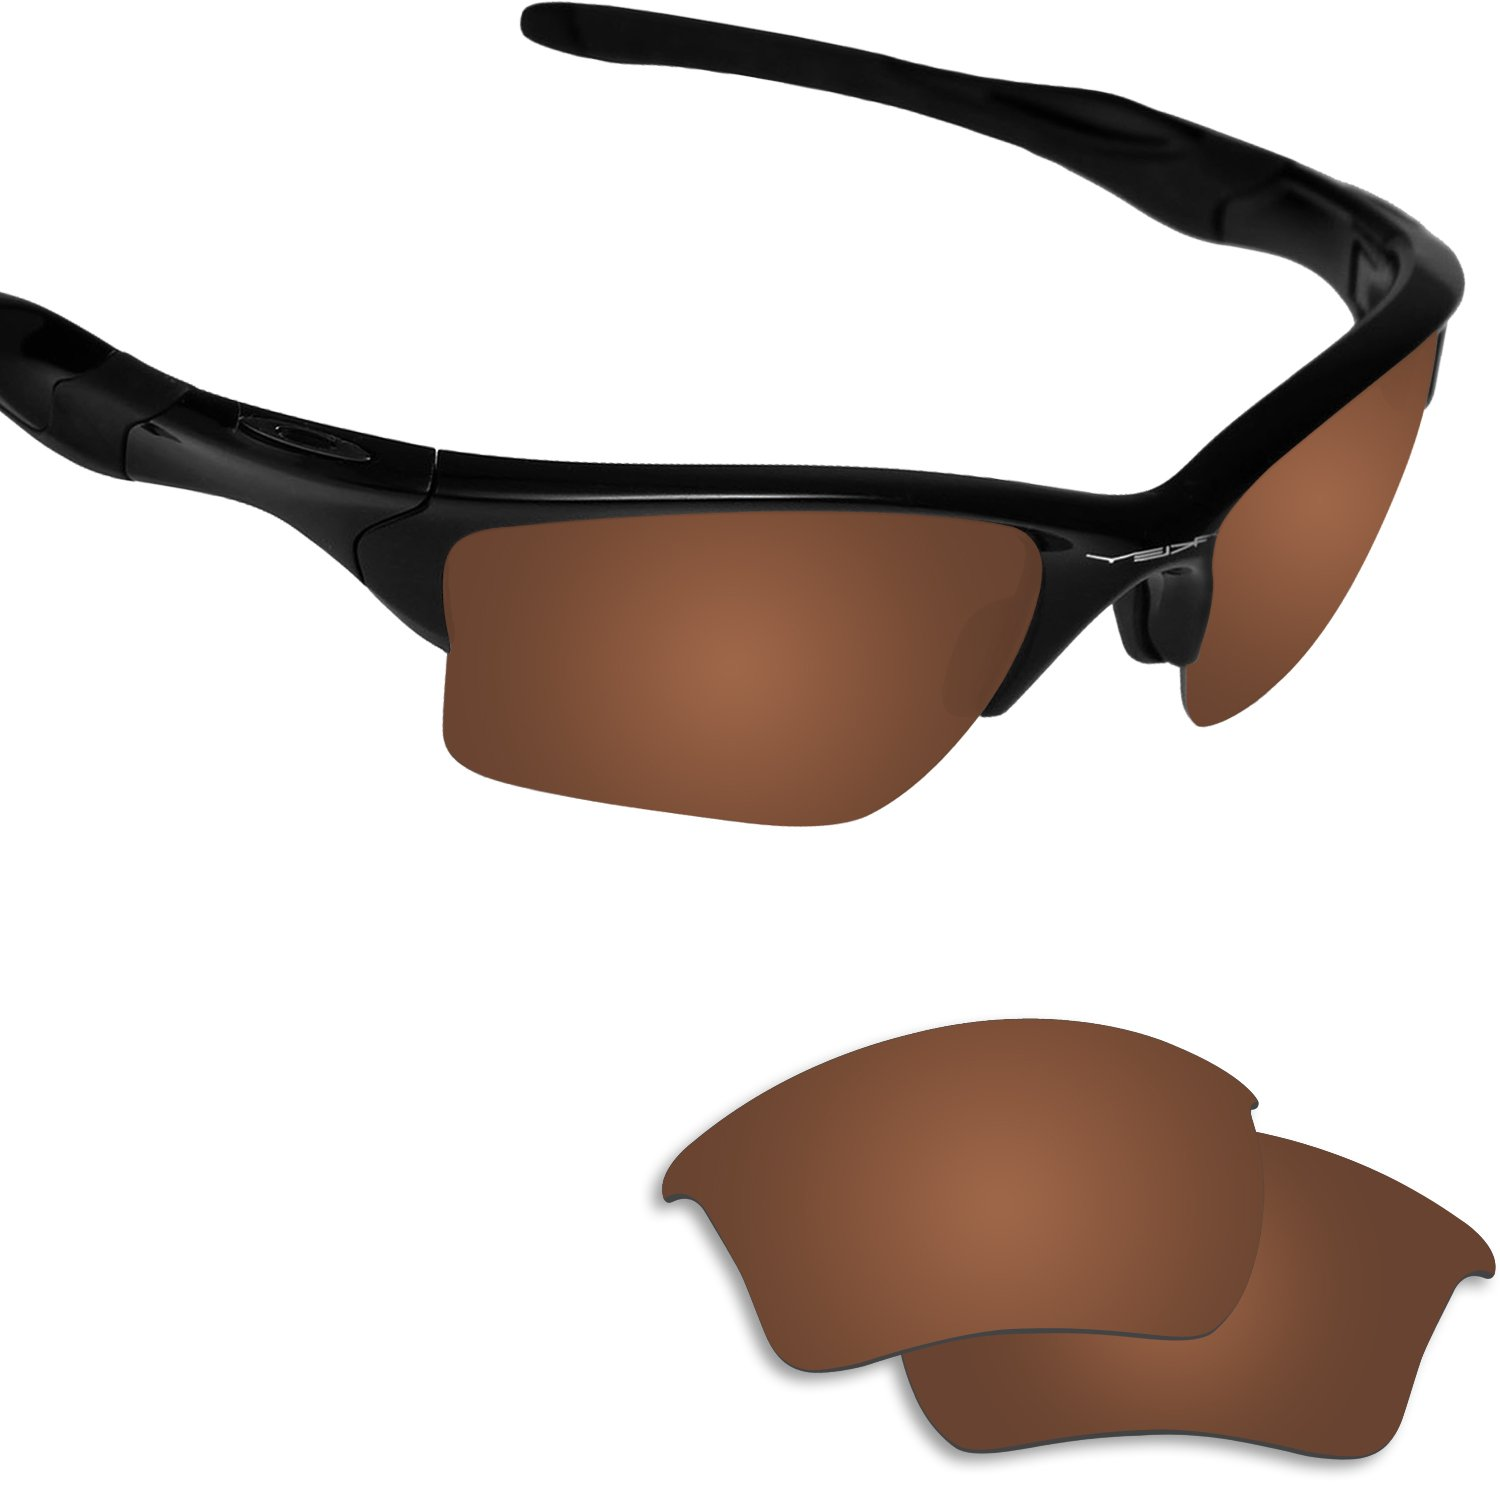 Fiskr Anti-saltwater Polarized Replacement Lenses for Oakley Half Jacket 2.0 XL Sunglasses by Fiskr